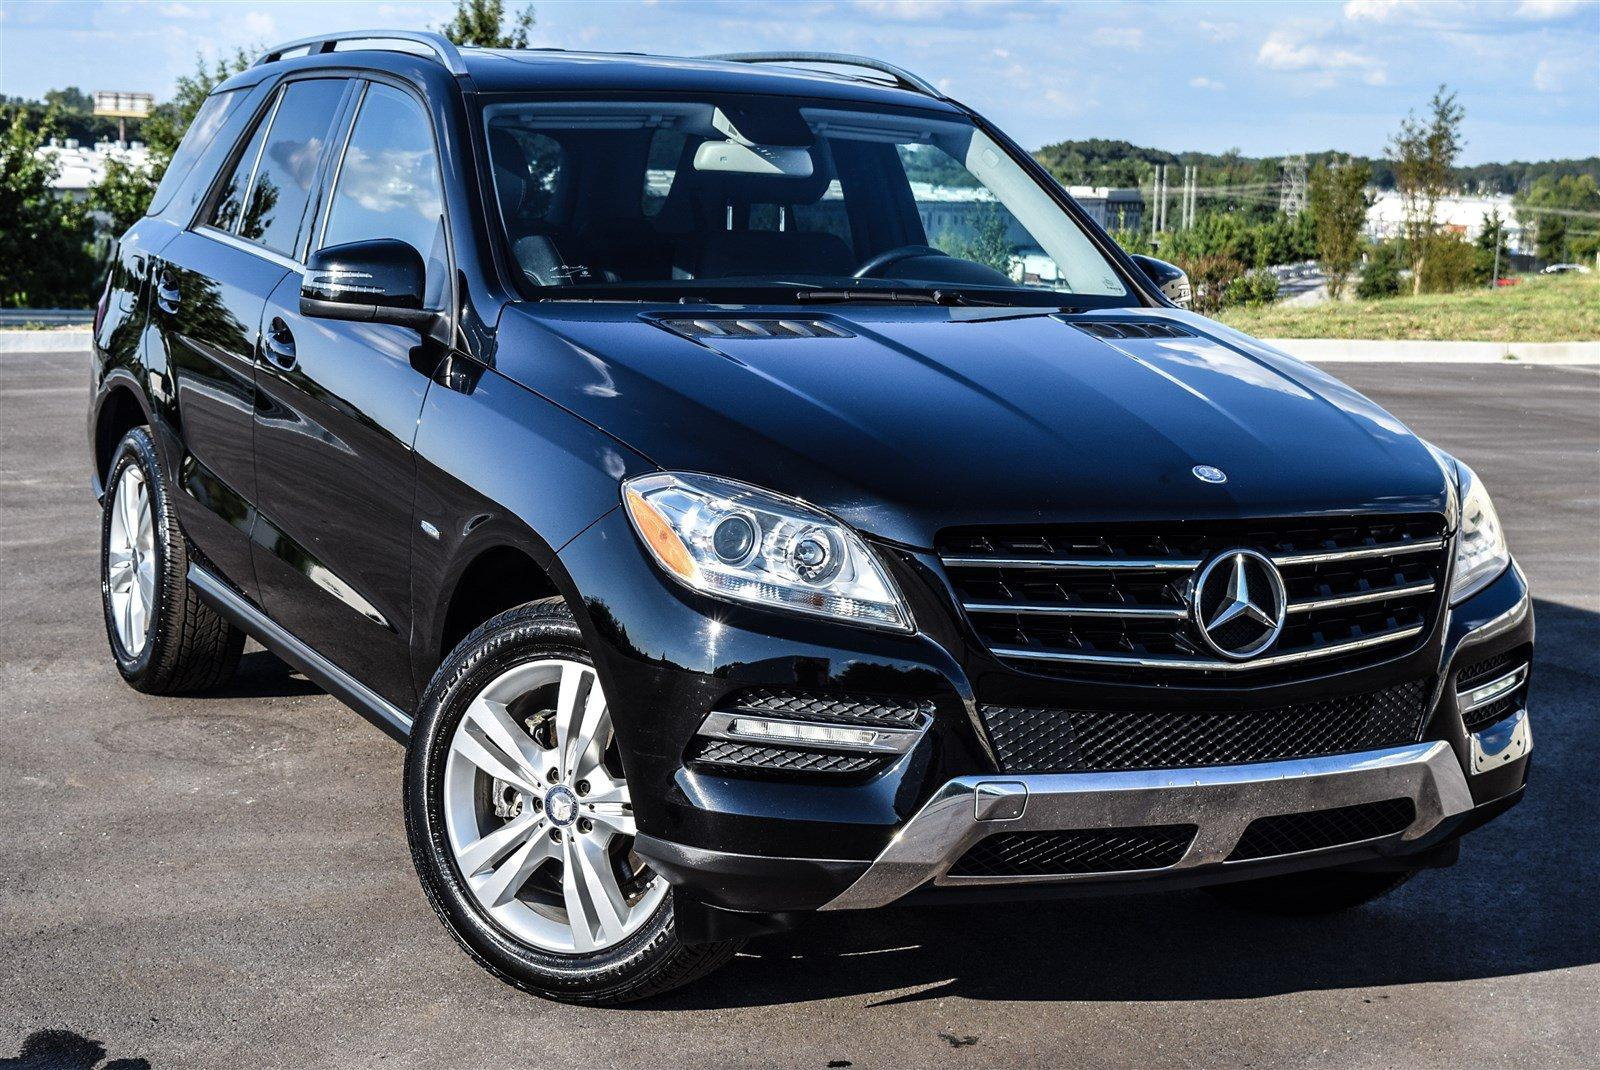 2012 mercedes benz m class ml350 stock 059774 for sale for Mercedes benz ml350 accessories